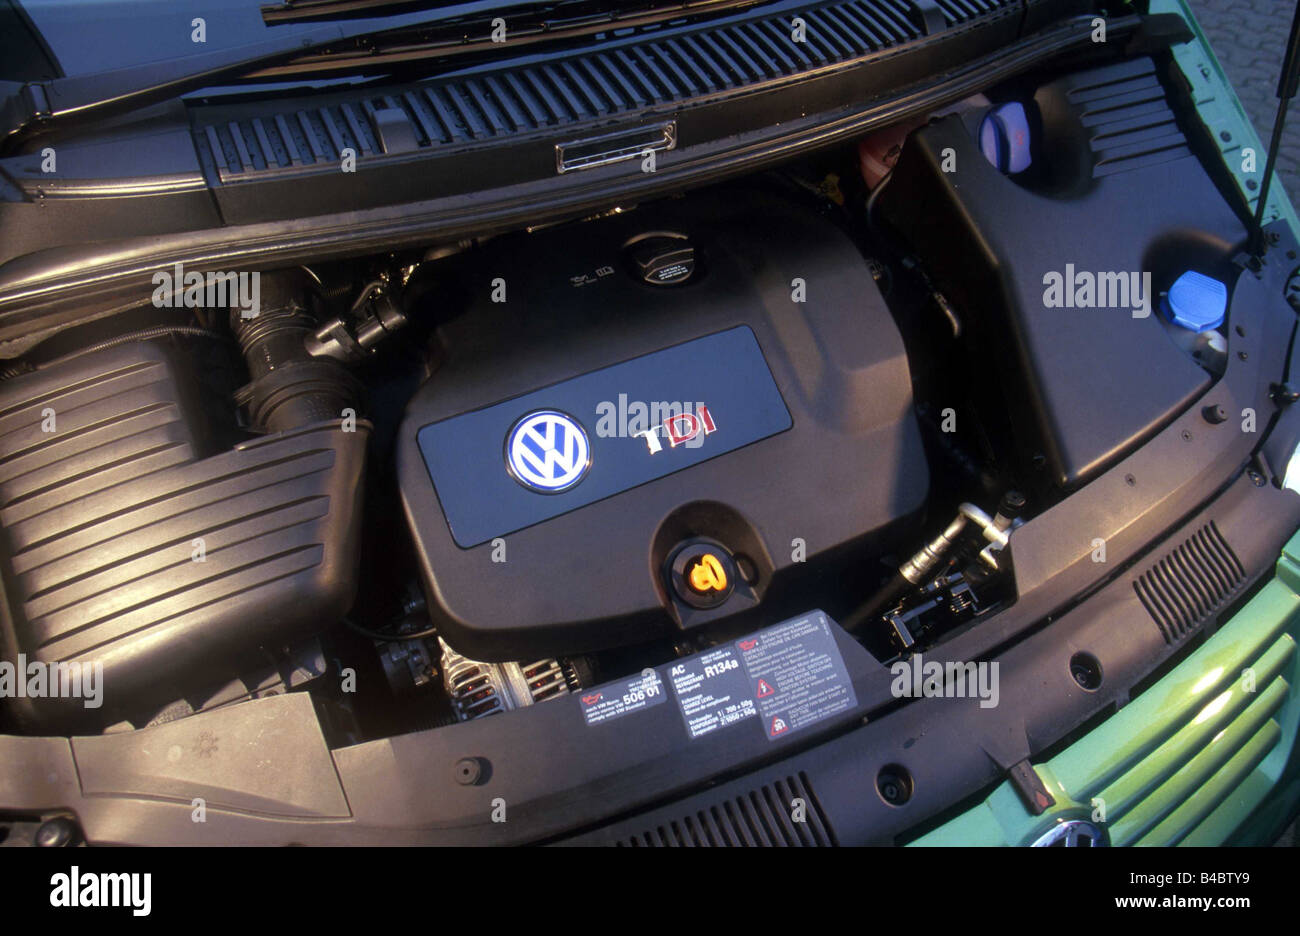 tdi engine stock photos tdi engine stock images alamy. Black Bedroom Furniture Sets. Home Design Ideas